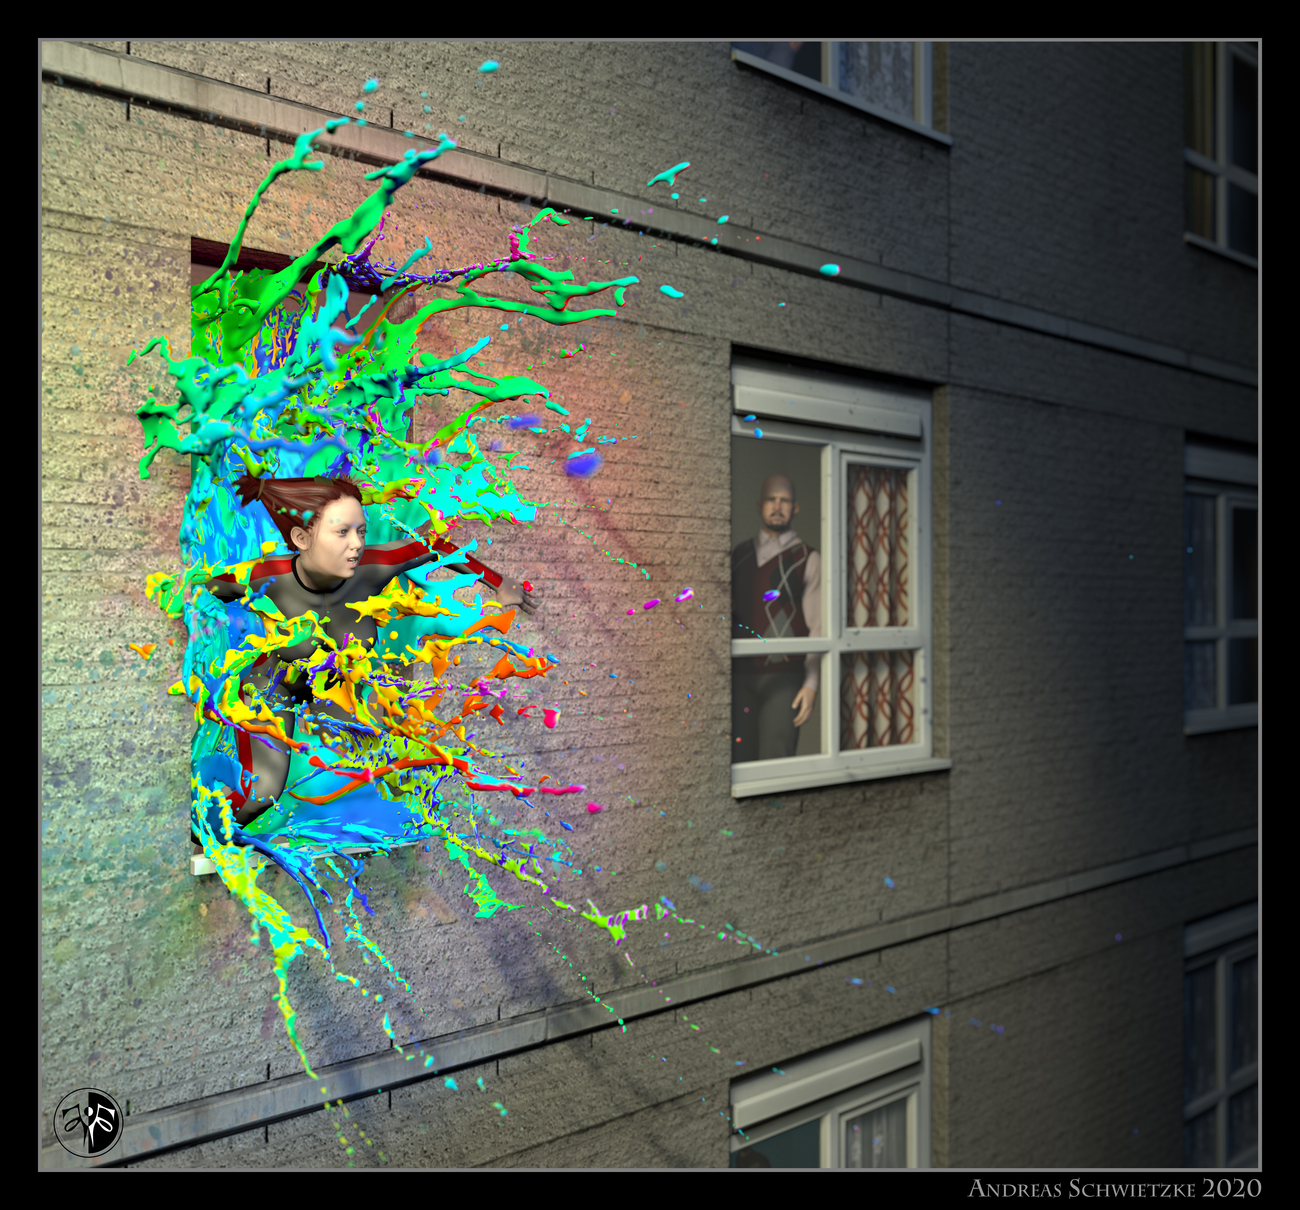 Exploding creativity by arteandreas